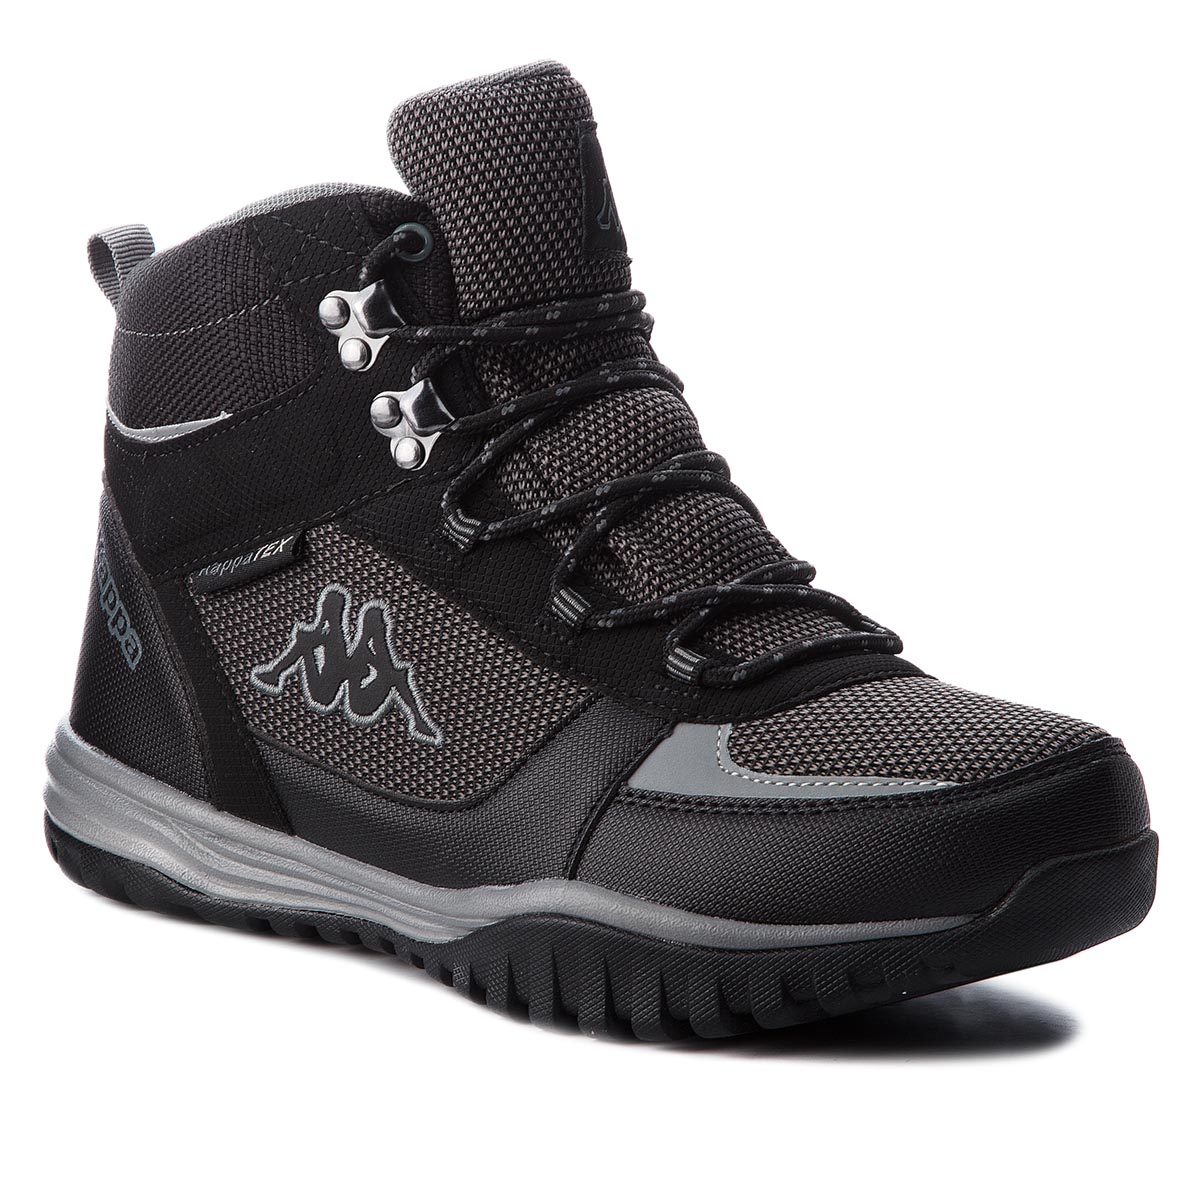 Turistiniai batai KAPPA - Mountain Tex 242369 Black/Grey 1116